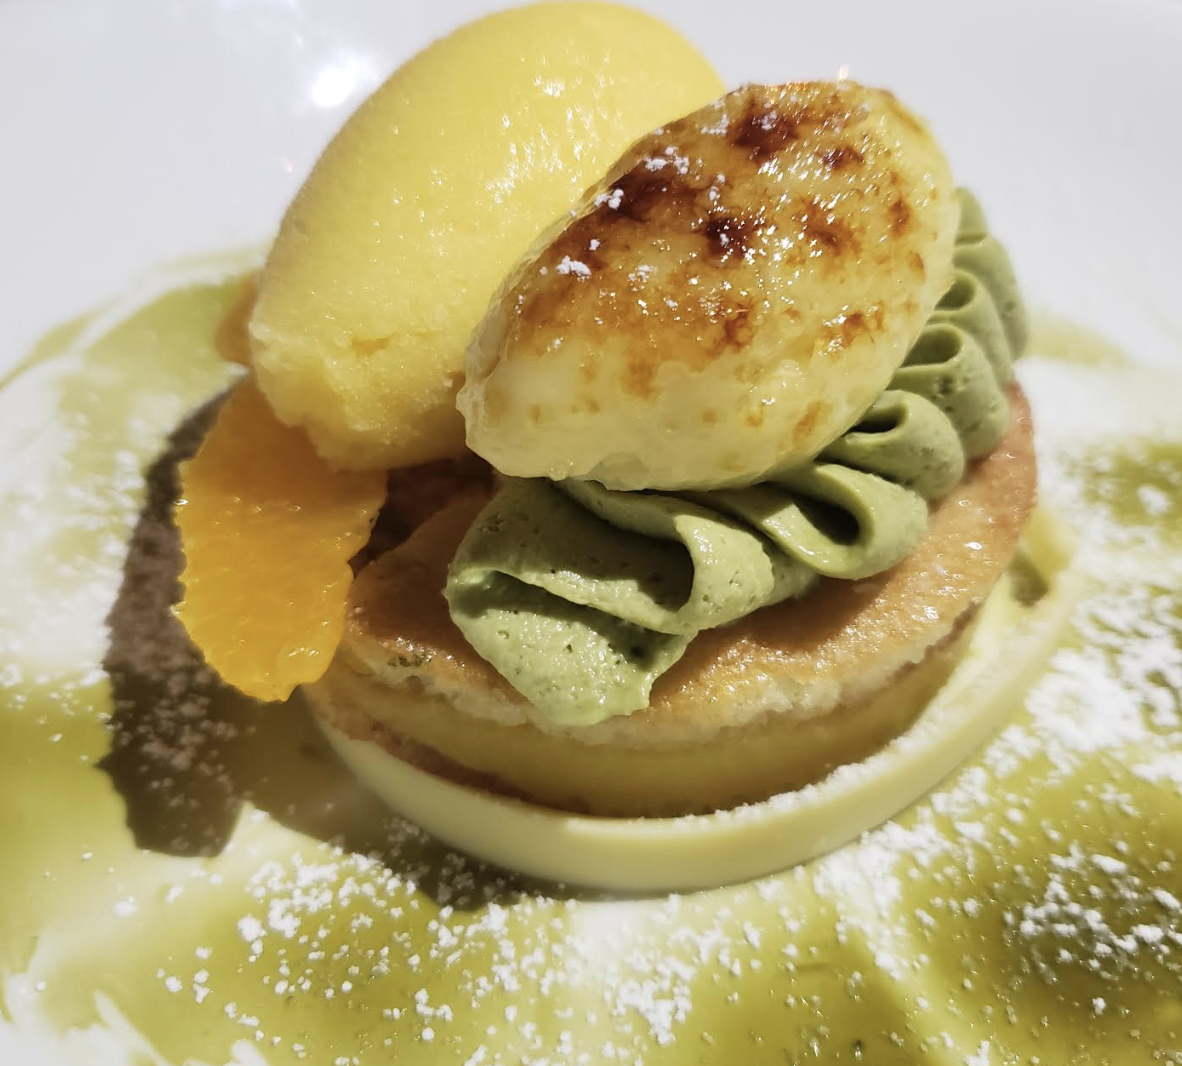 End Your Tasting Dinner with Delicious Dessert at Commerson!